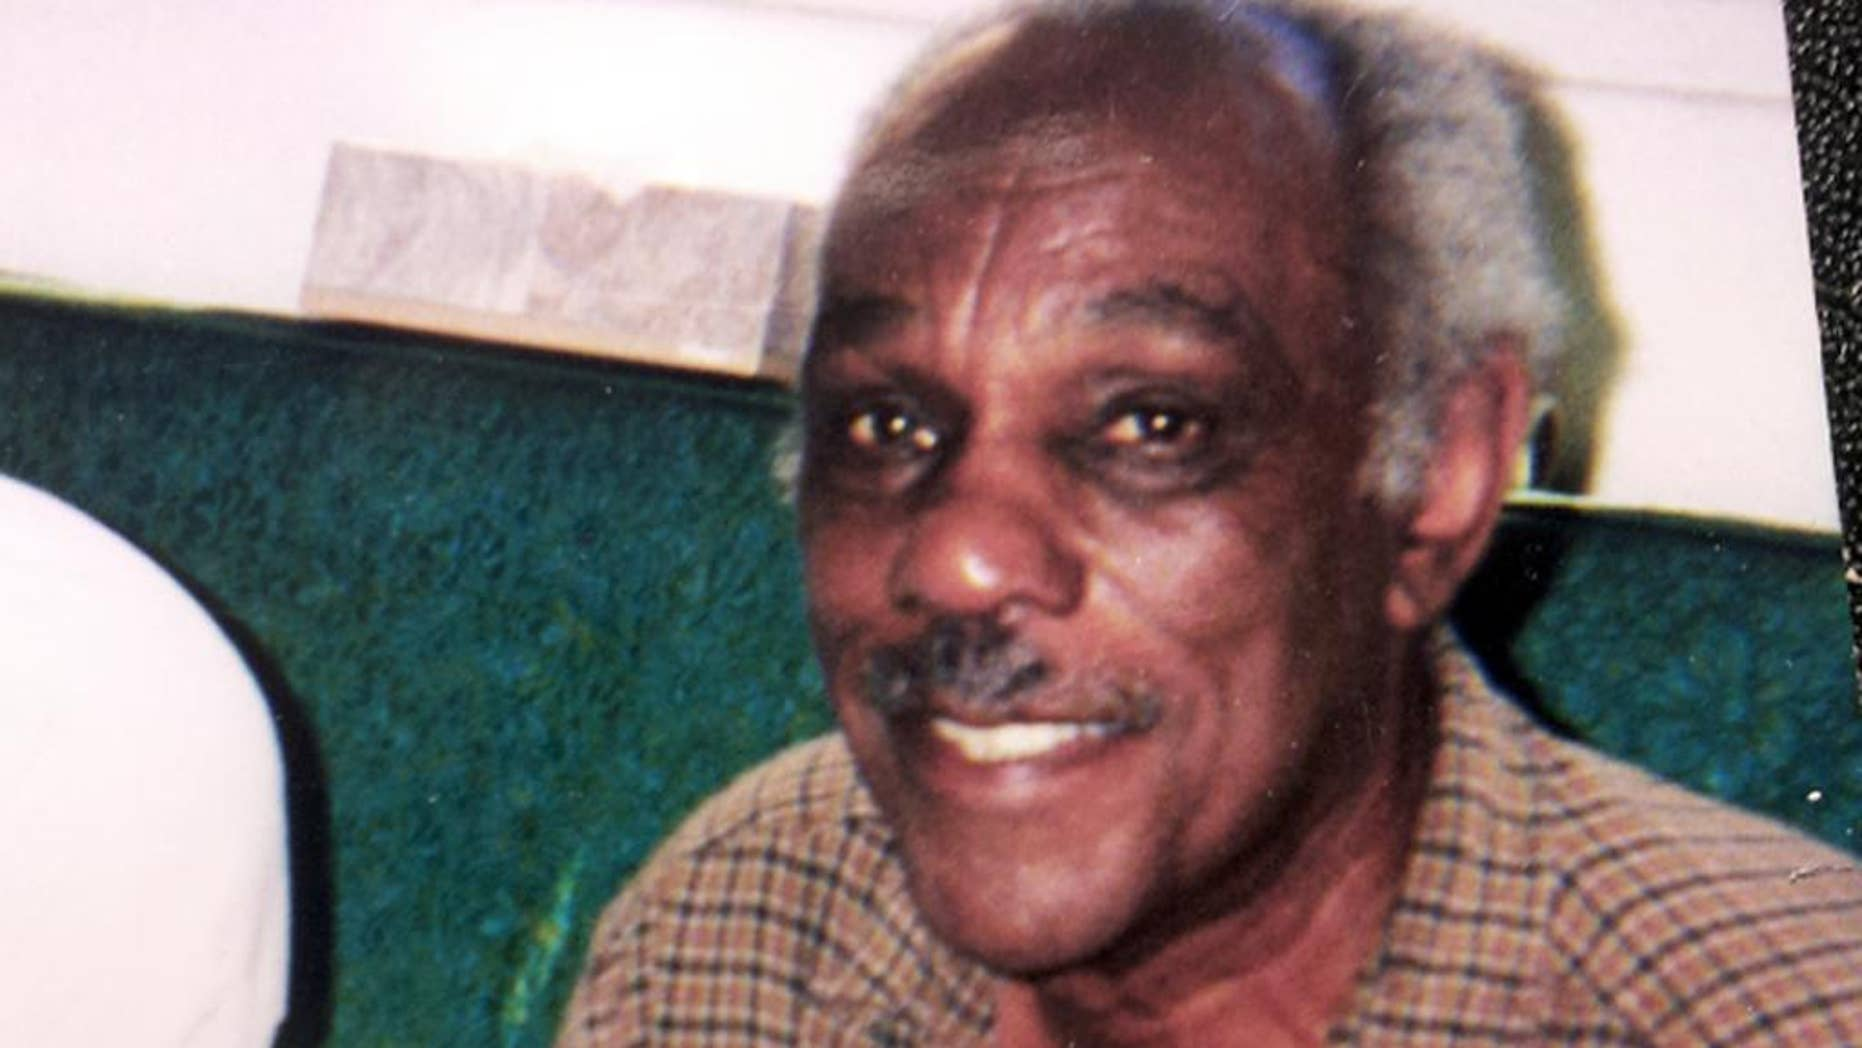 """CORRECTS SPELLING OF LAST NAME TO SHAMBREY - This circa 2000 photo provided by Tim Shambrey shows his father, Joseph Shambrey, a member of the Tuskegee Airmen, the famed all-black squadron that flew in World War II, at his home in Los Angeles. Shambrey and fellow Tuskegee Airman Clarence E. """"Buddy"""" Huntley Jr., lifelong friends who enlisted together, both died on the same day, Monday, Jan. 5, 2015, in their Los Angeles homes, relatives said Sunday, Jan. 11, 2015. Both were 91. Huntley and Shambrey enlisted in 1942 and were shipped overseas to Italy in 1944 with the 100th Fighter Squadron of the Army Air Force's 332nd Fighter Group. As mechanics, they kept the combat planes flying.(AP Photo/Courtesy Tim Shambray)"""